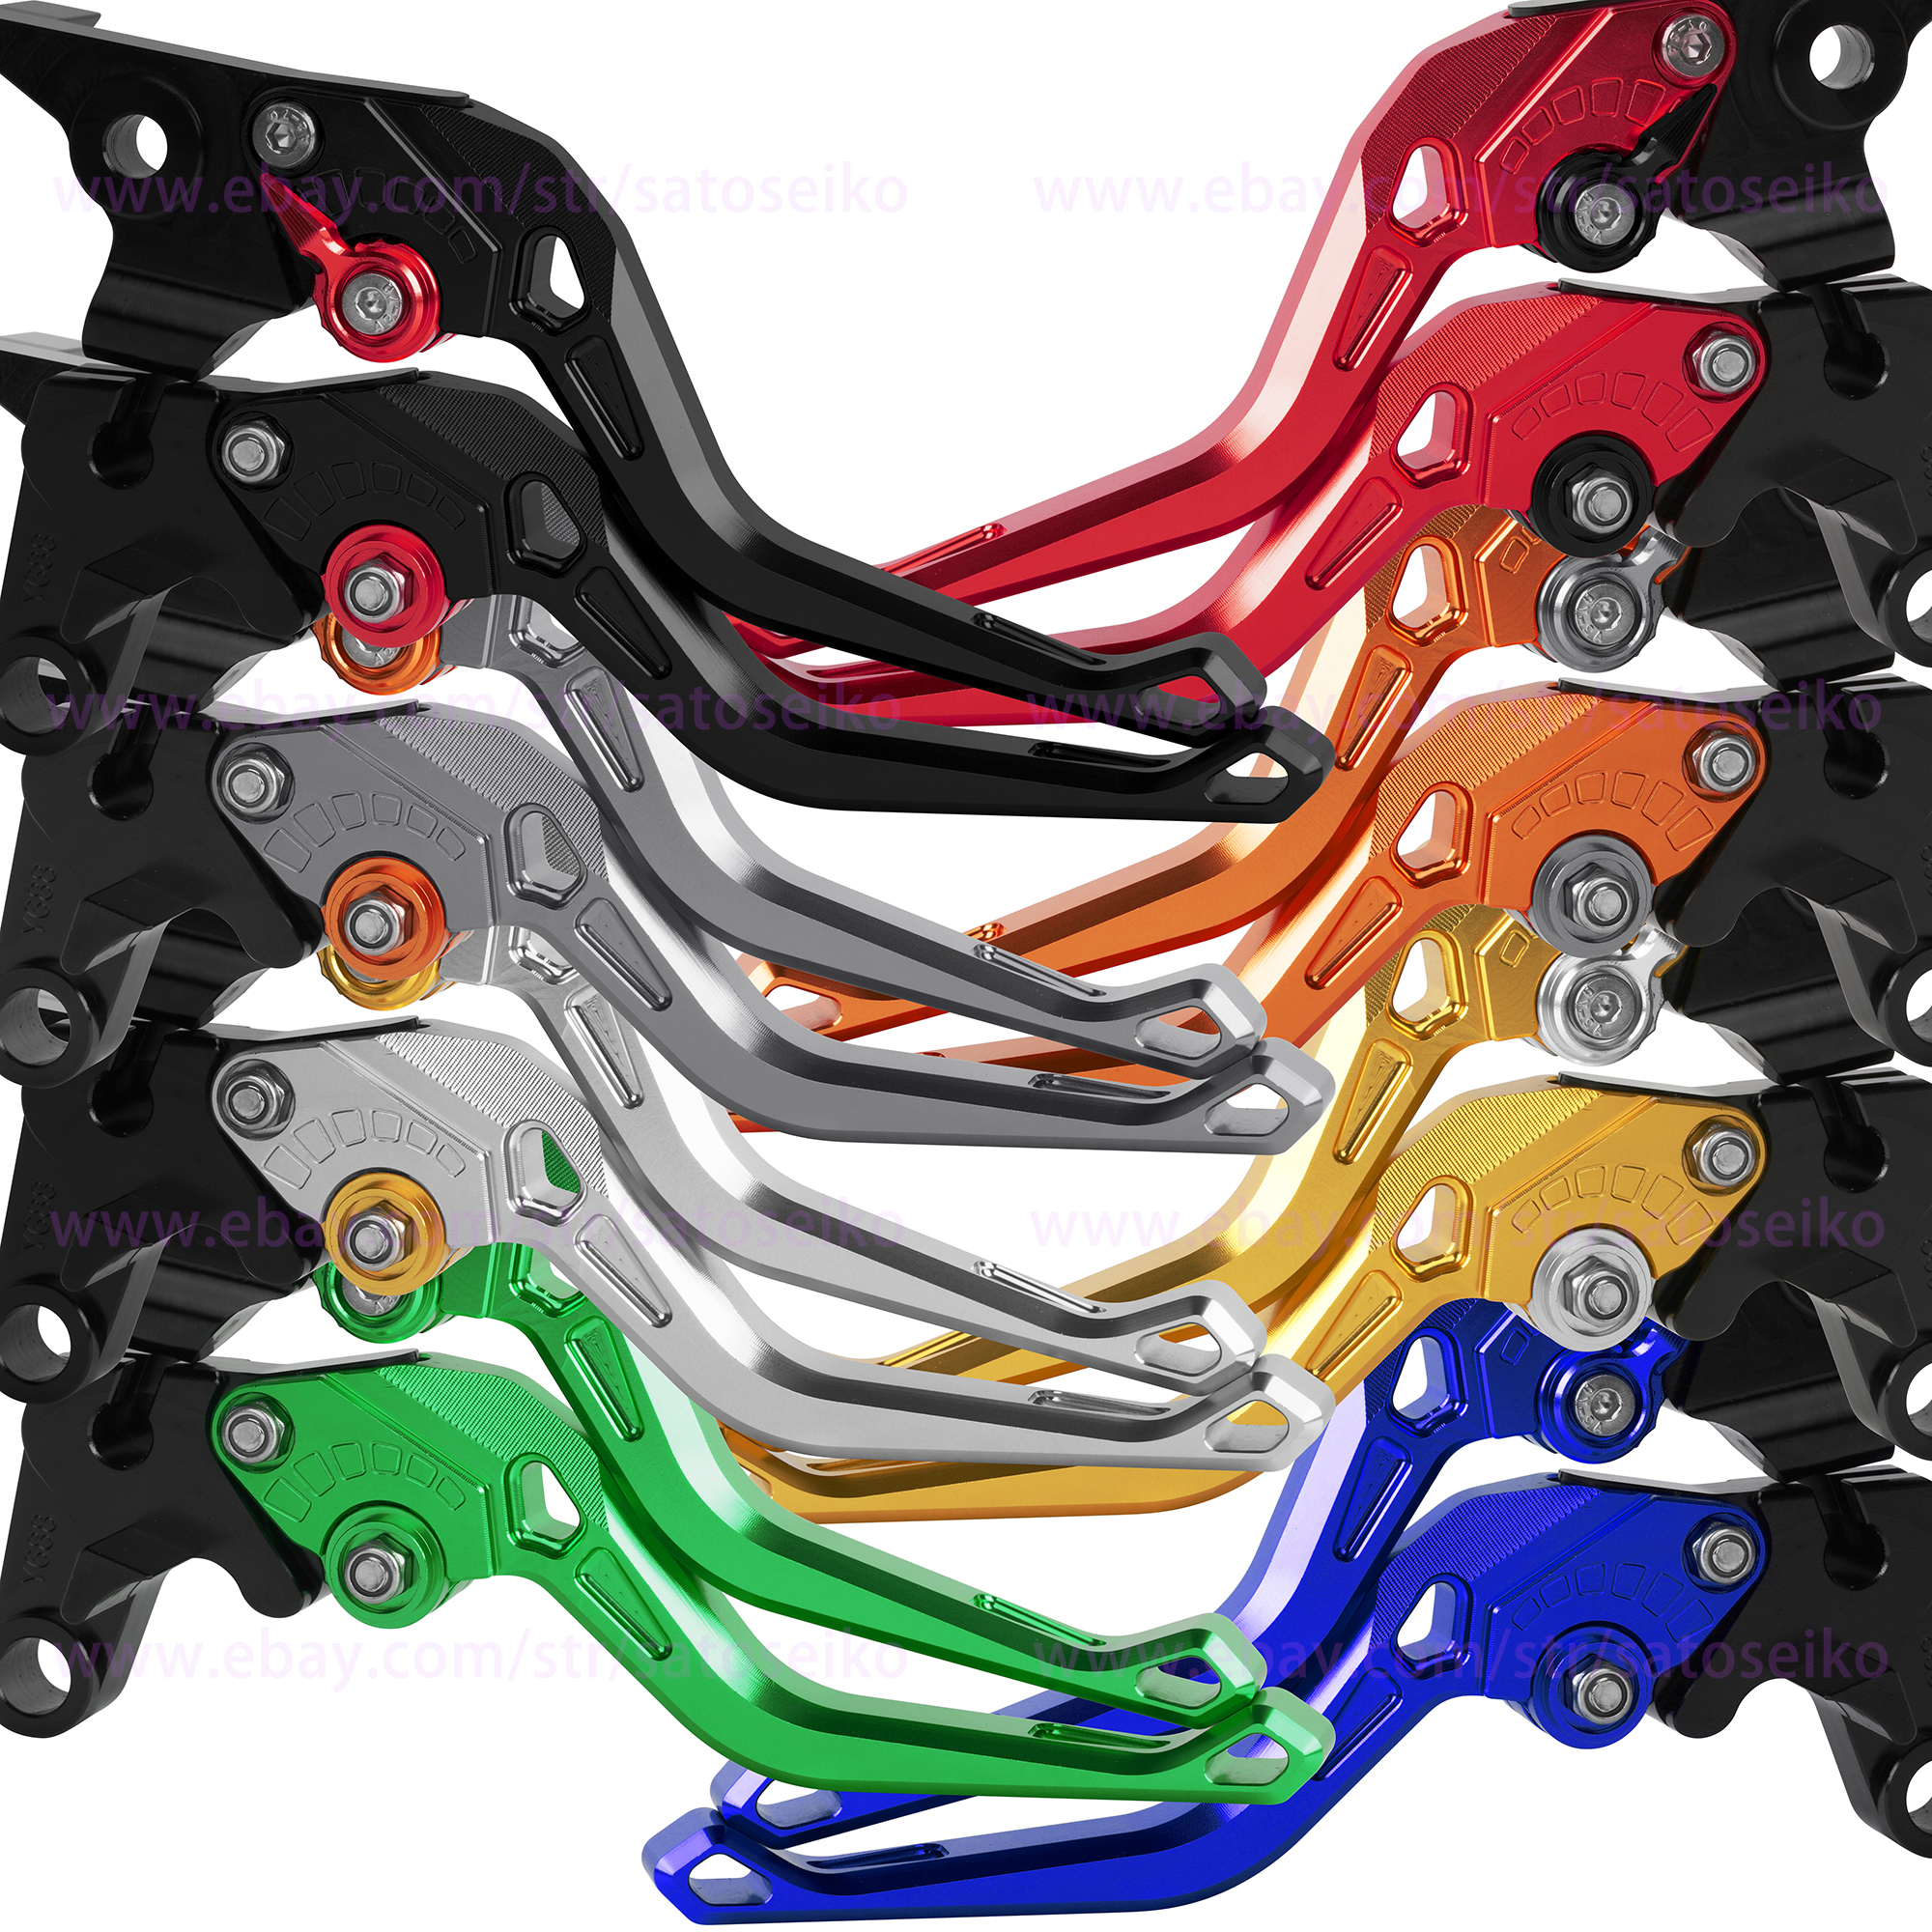 Motorcycle CNC Drum Disc Fit For Hydraulic Line GY6 Brake Clutch Lever Grip Trim